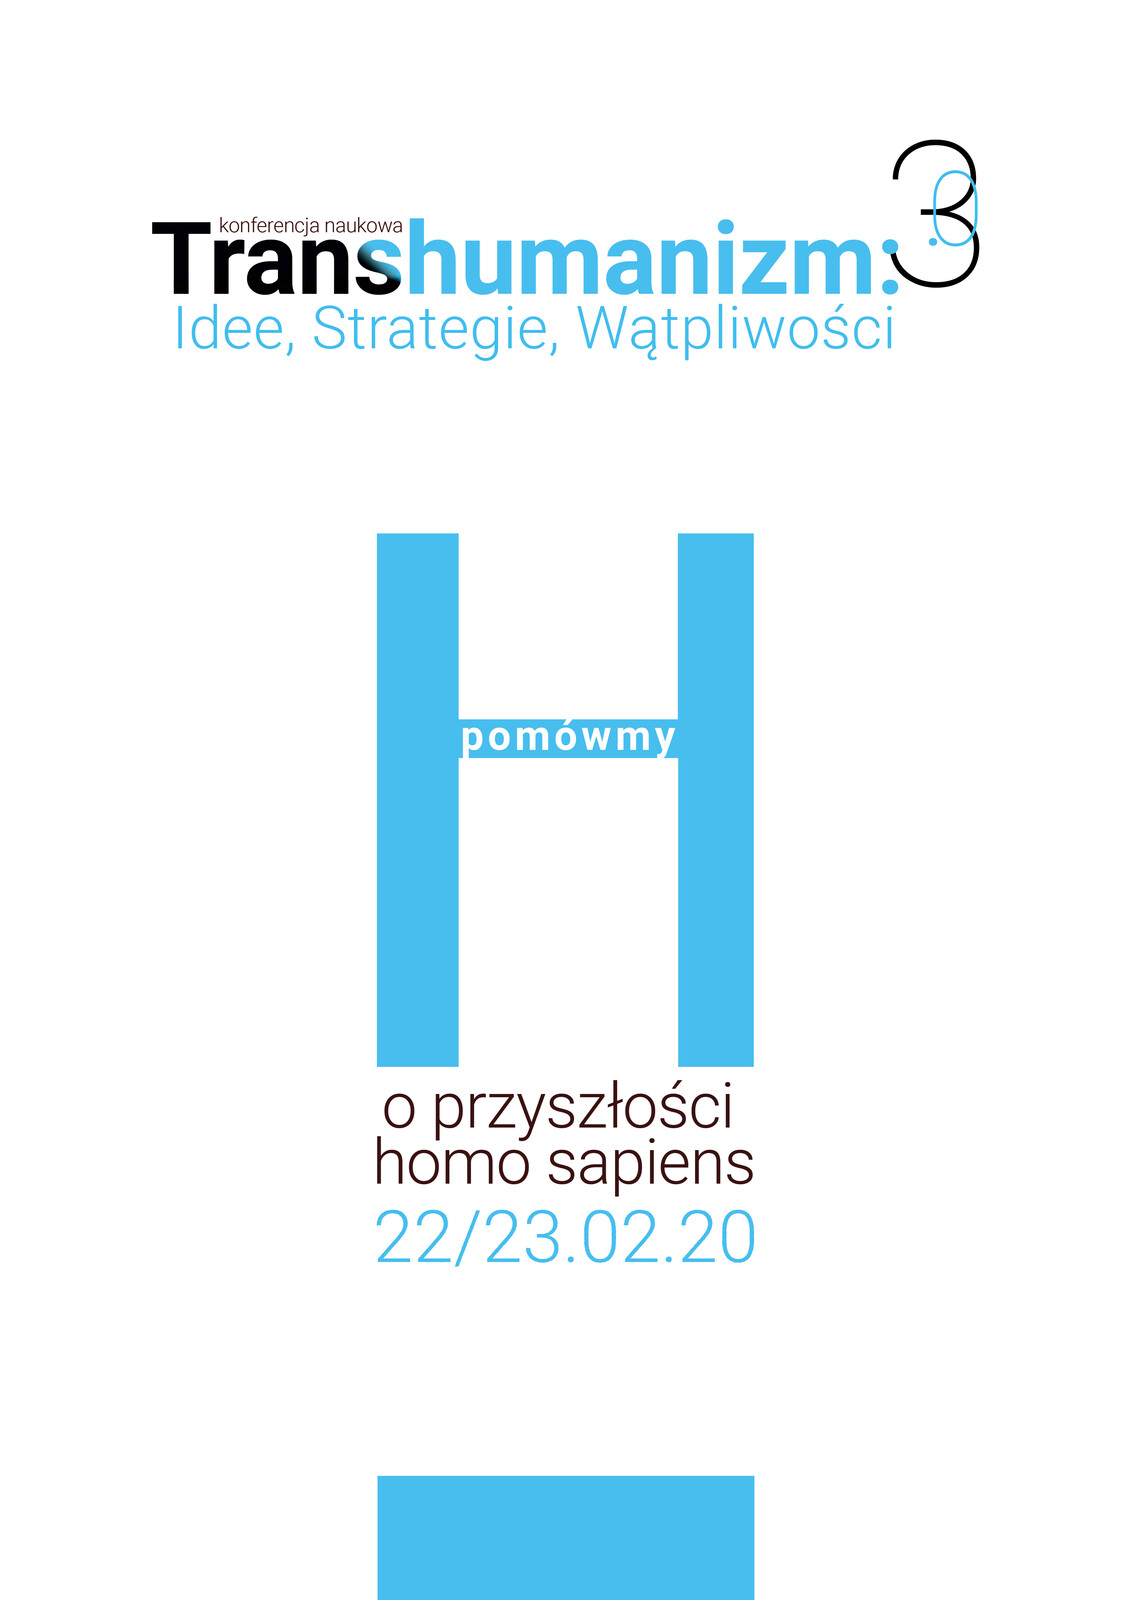 Poster for the 3.0 conference about Transhumanism